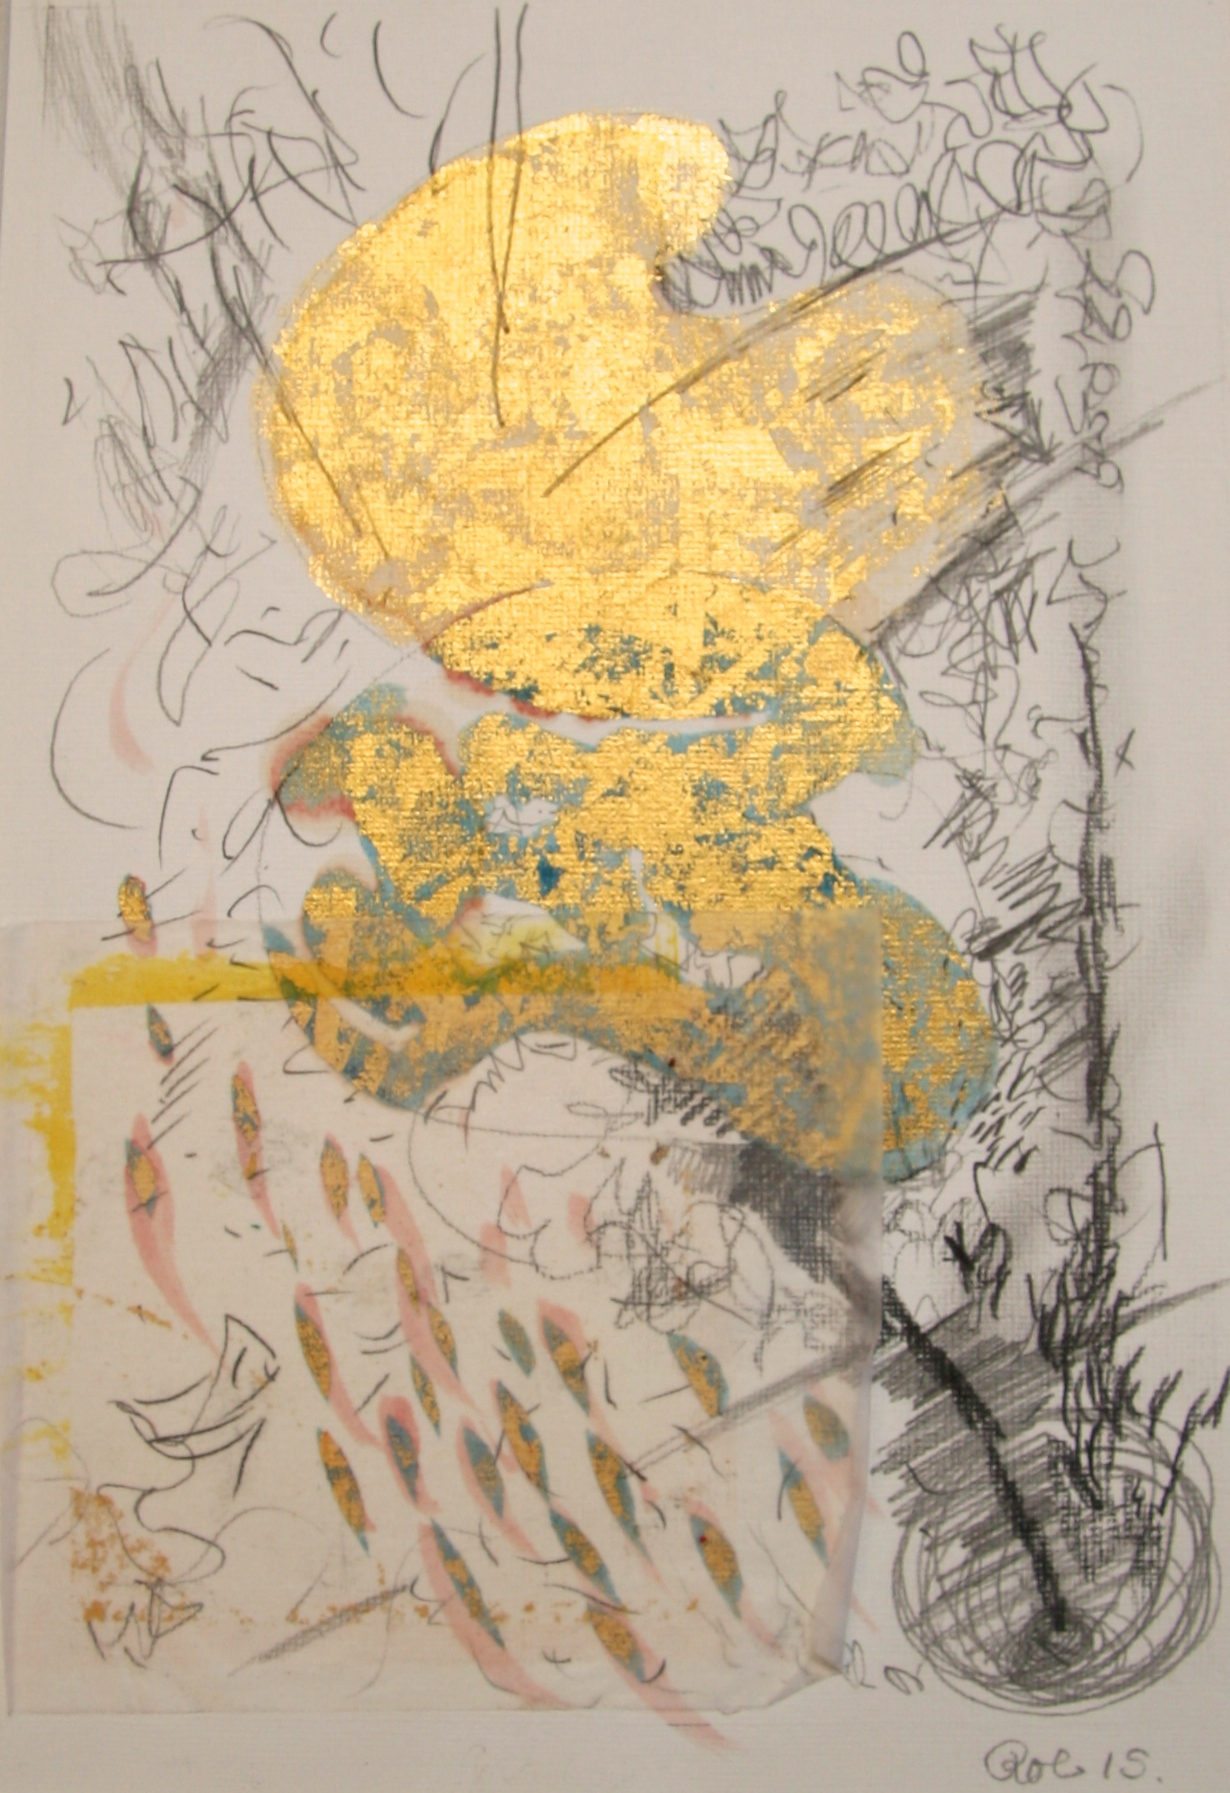 Gold and metal leaf, Tinted shellac and mixed media on paper 210 x 297mm. 2015.